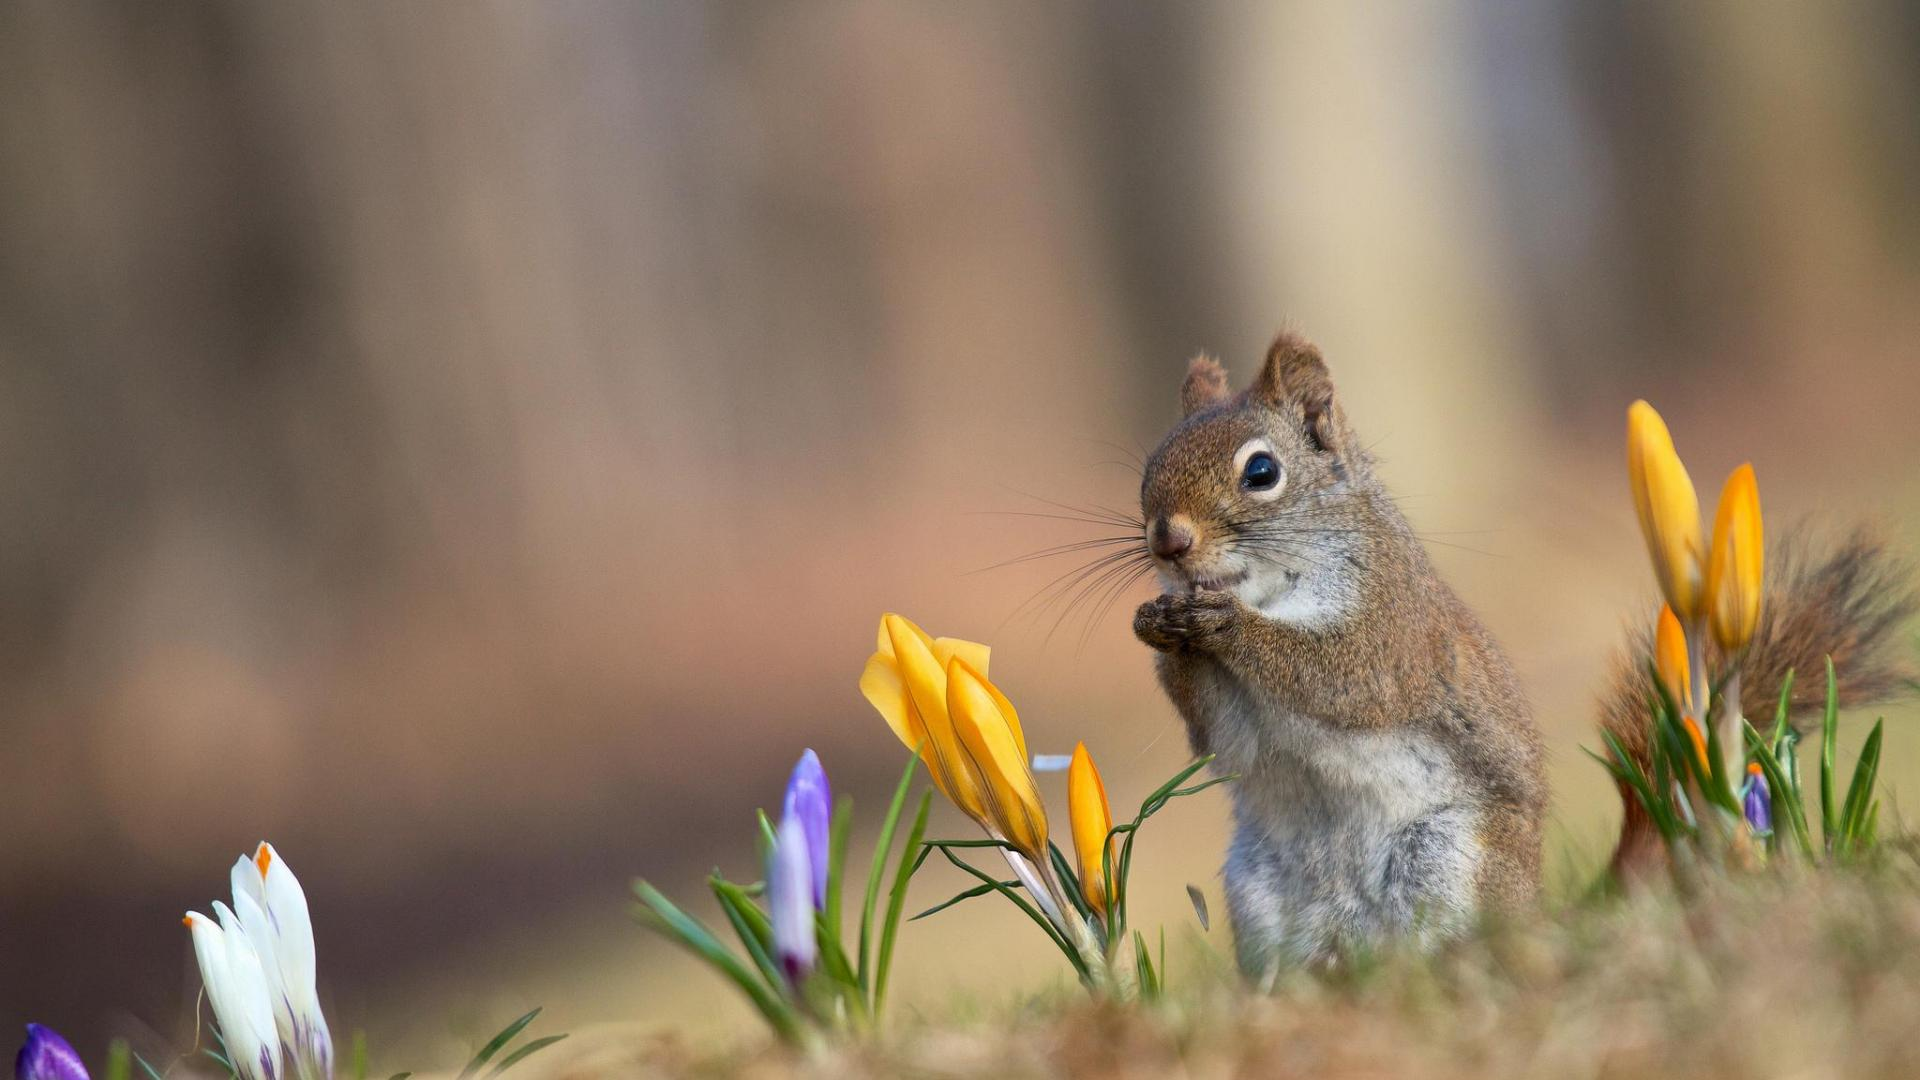 squirrel wallpaper - photo #42